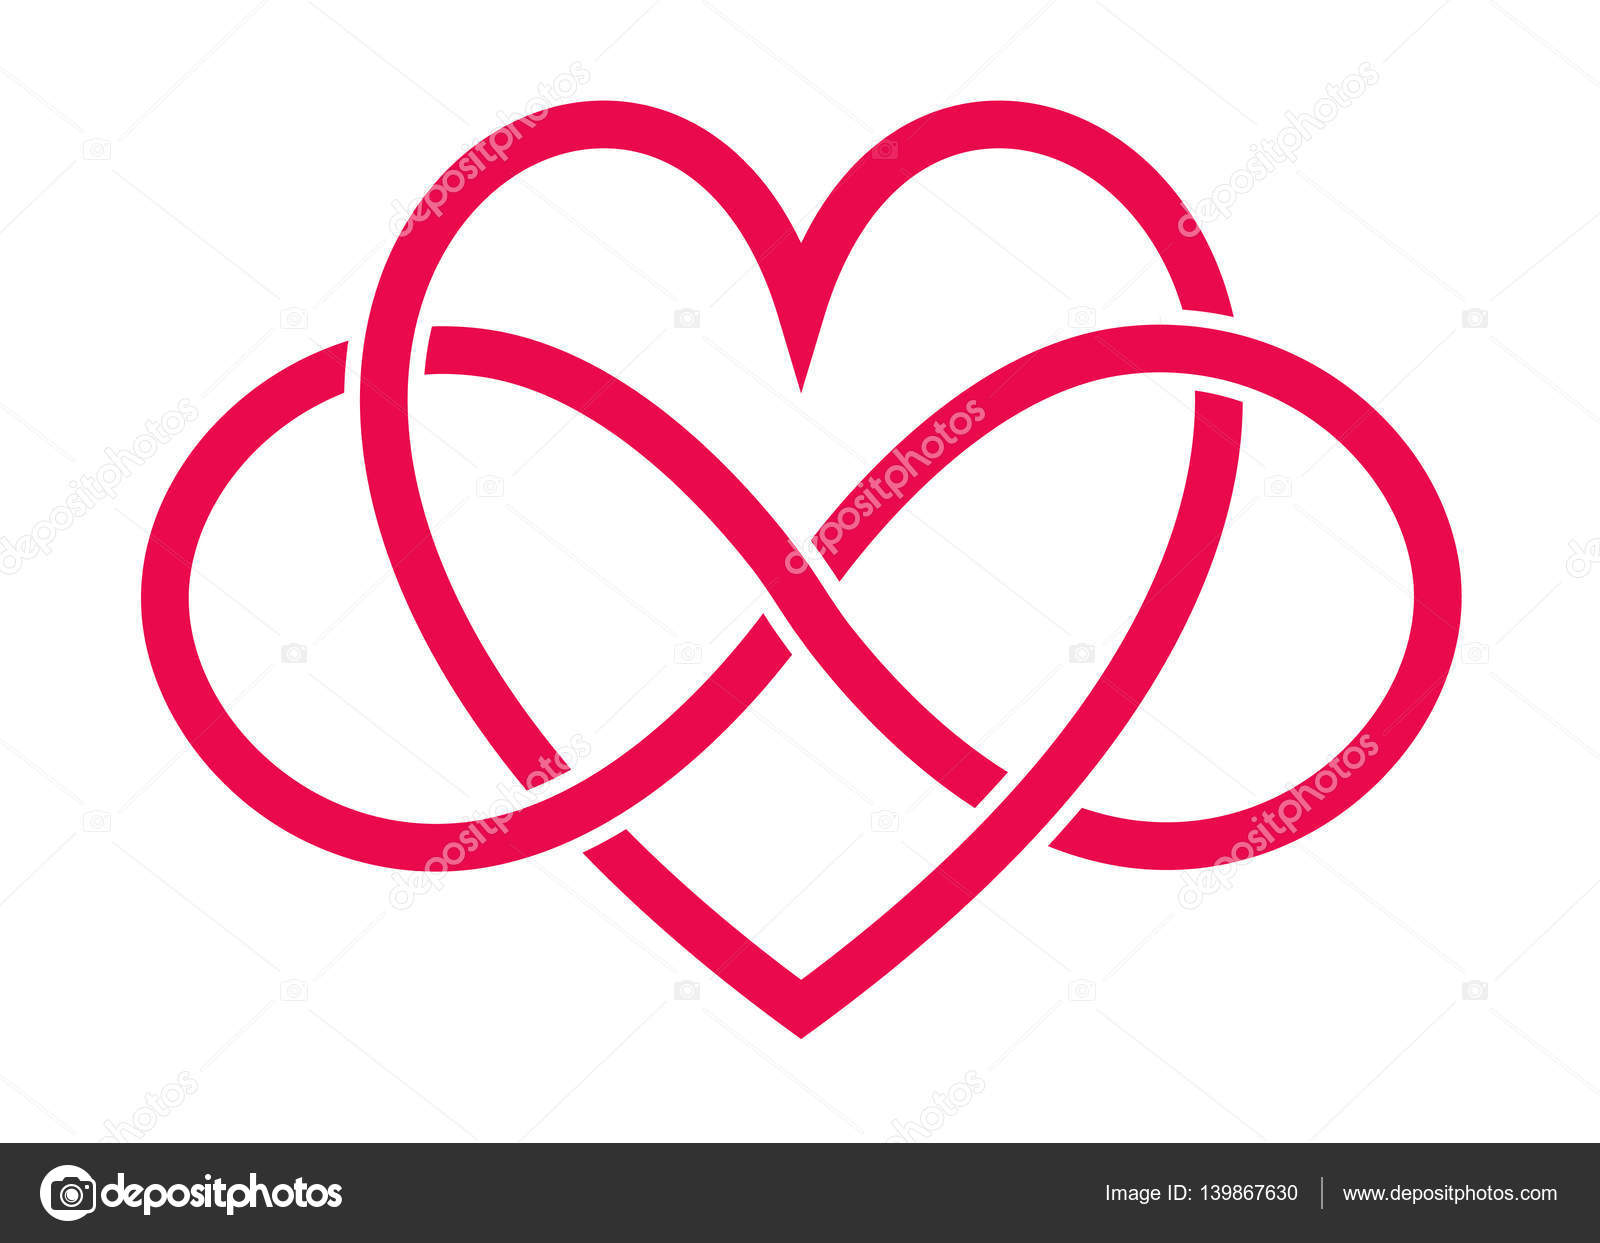 Red heart and infinity signs stock vector scrapster 139867630 red heart and infinity signs stock vector buycottarizona Gallery